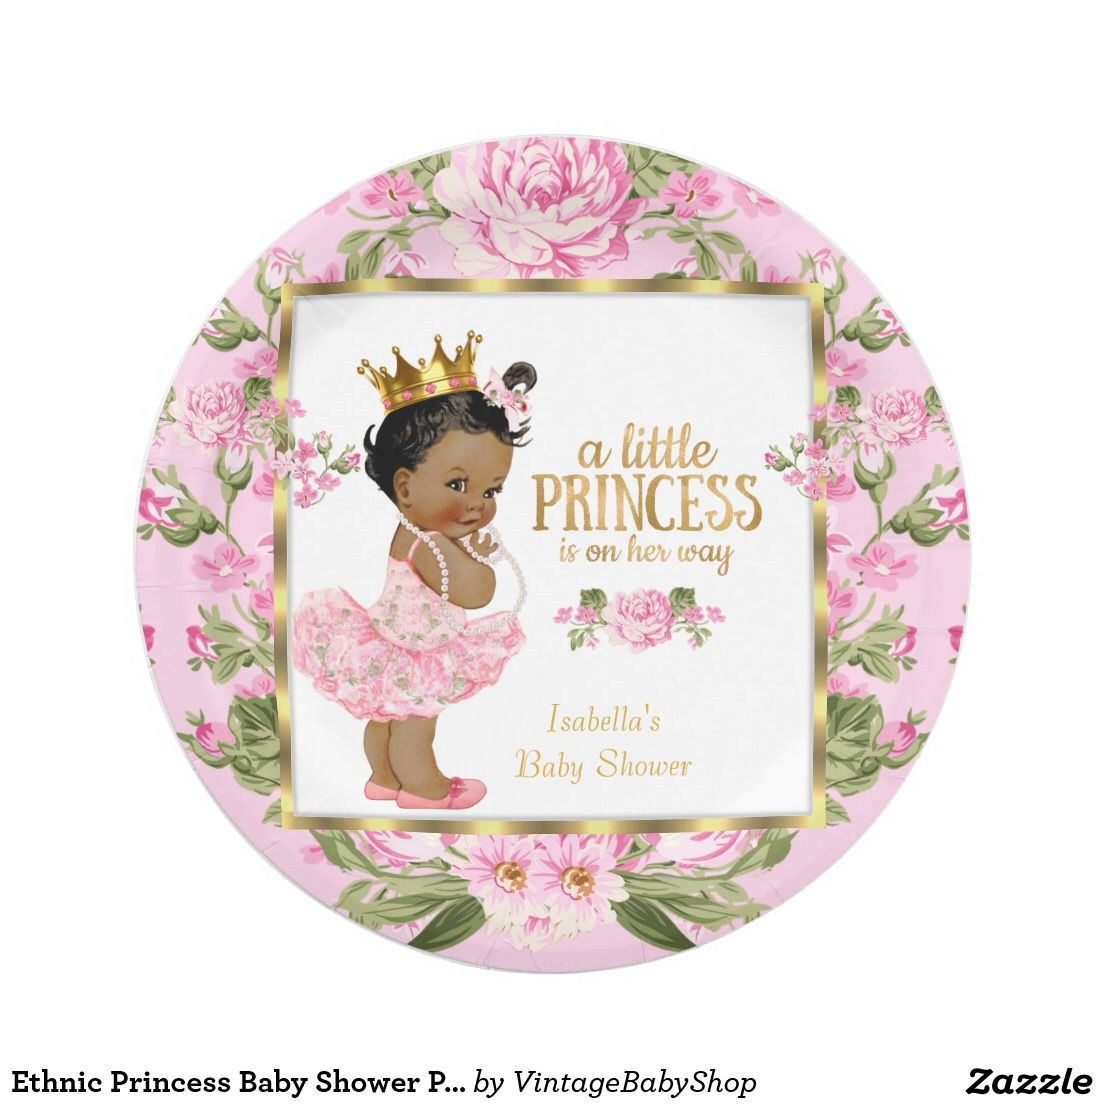 Ethnic Princess Baby Shower Pink Gold Rose Floral 7 Inch Paper Plate  sc 1 st  Pinterest & Ethnic Princess Baby Shower Pink Gold Rose Floral Paper Plate ...